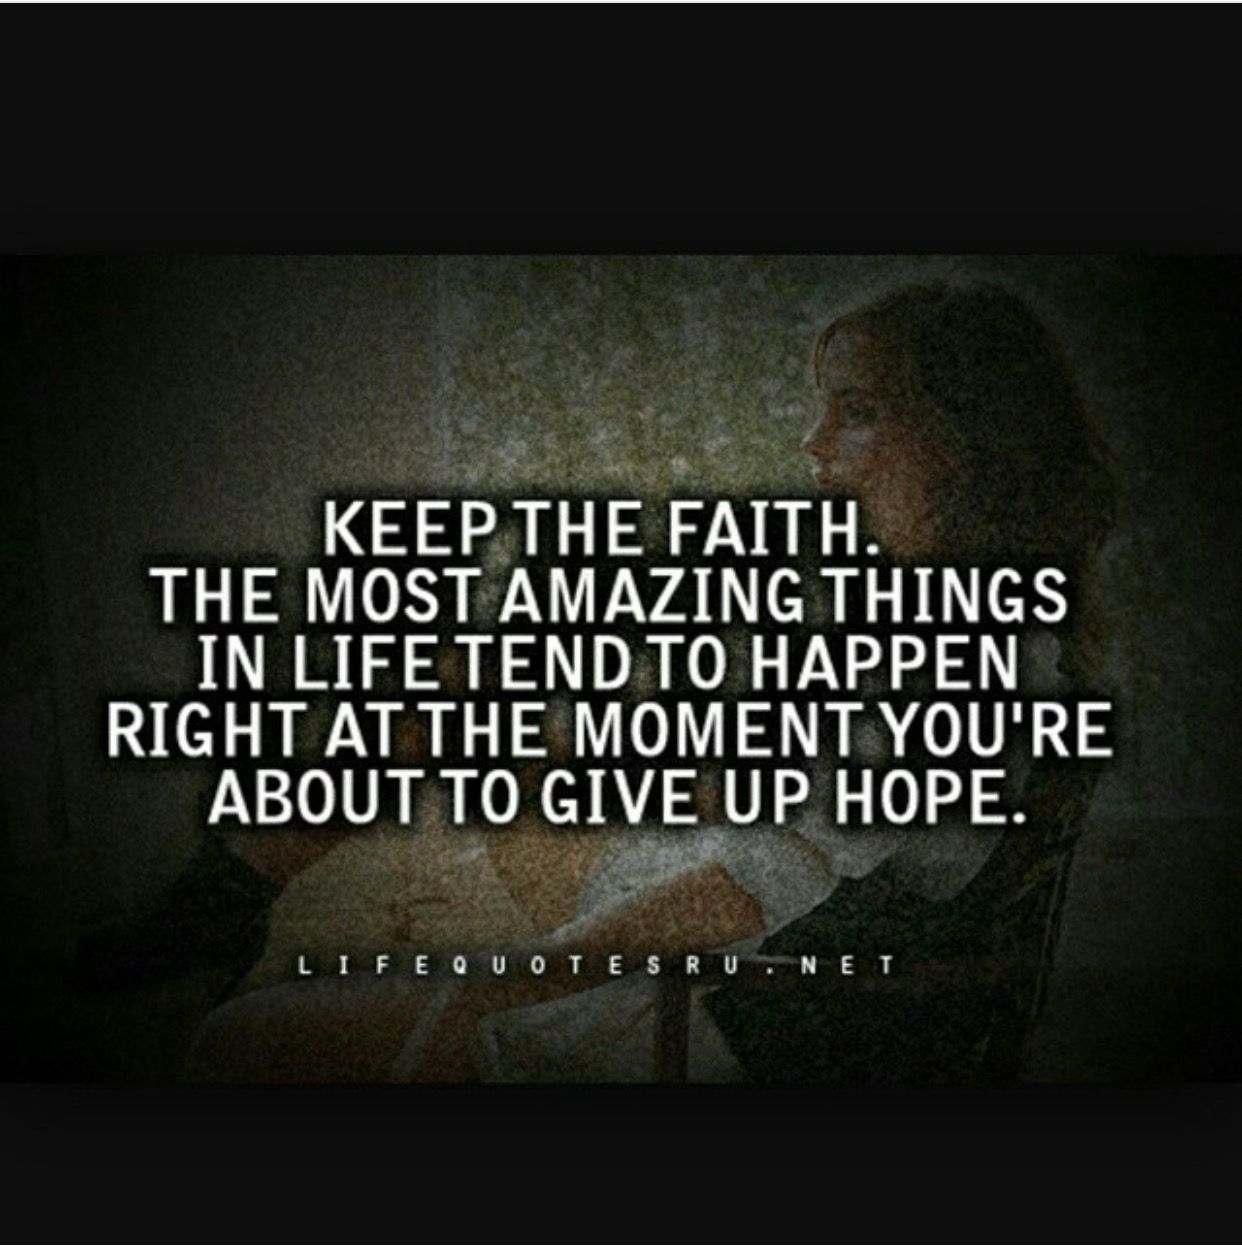 Positive Quotes About Love Pinhank Morgan On Believe  Pinterest